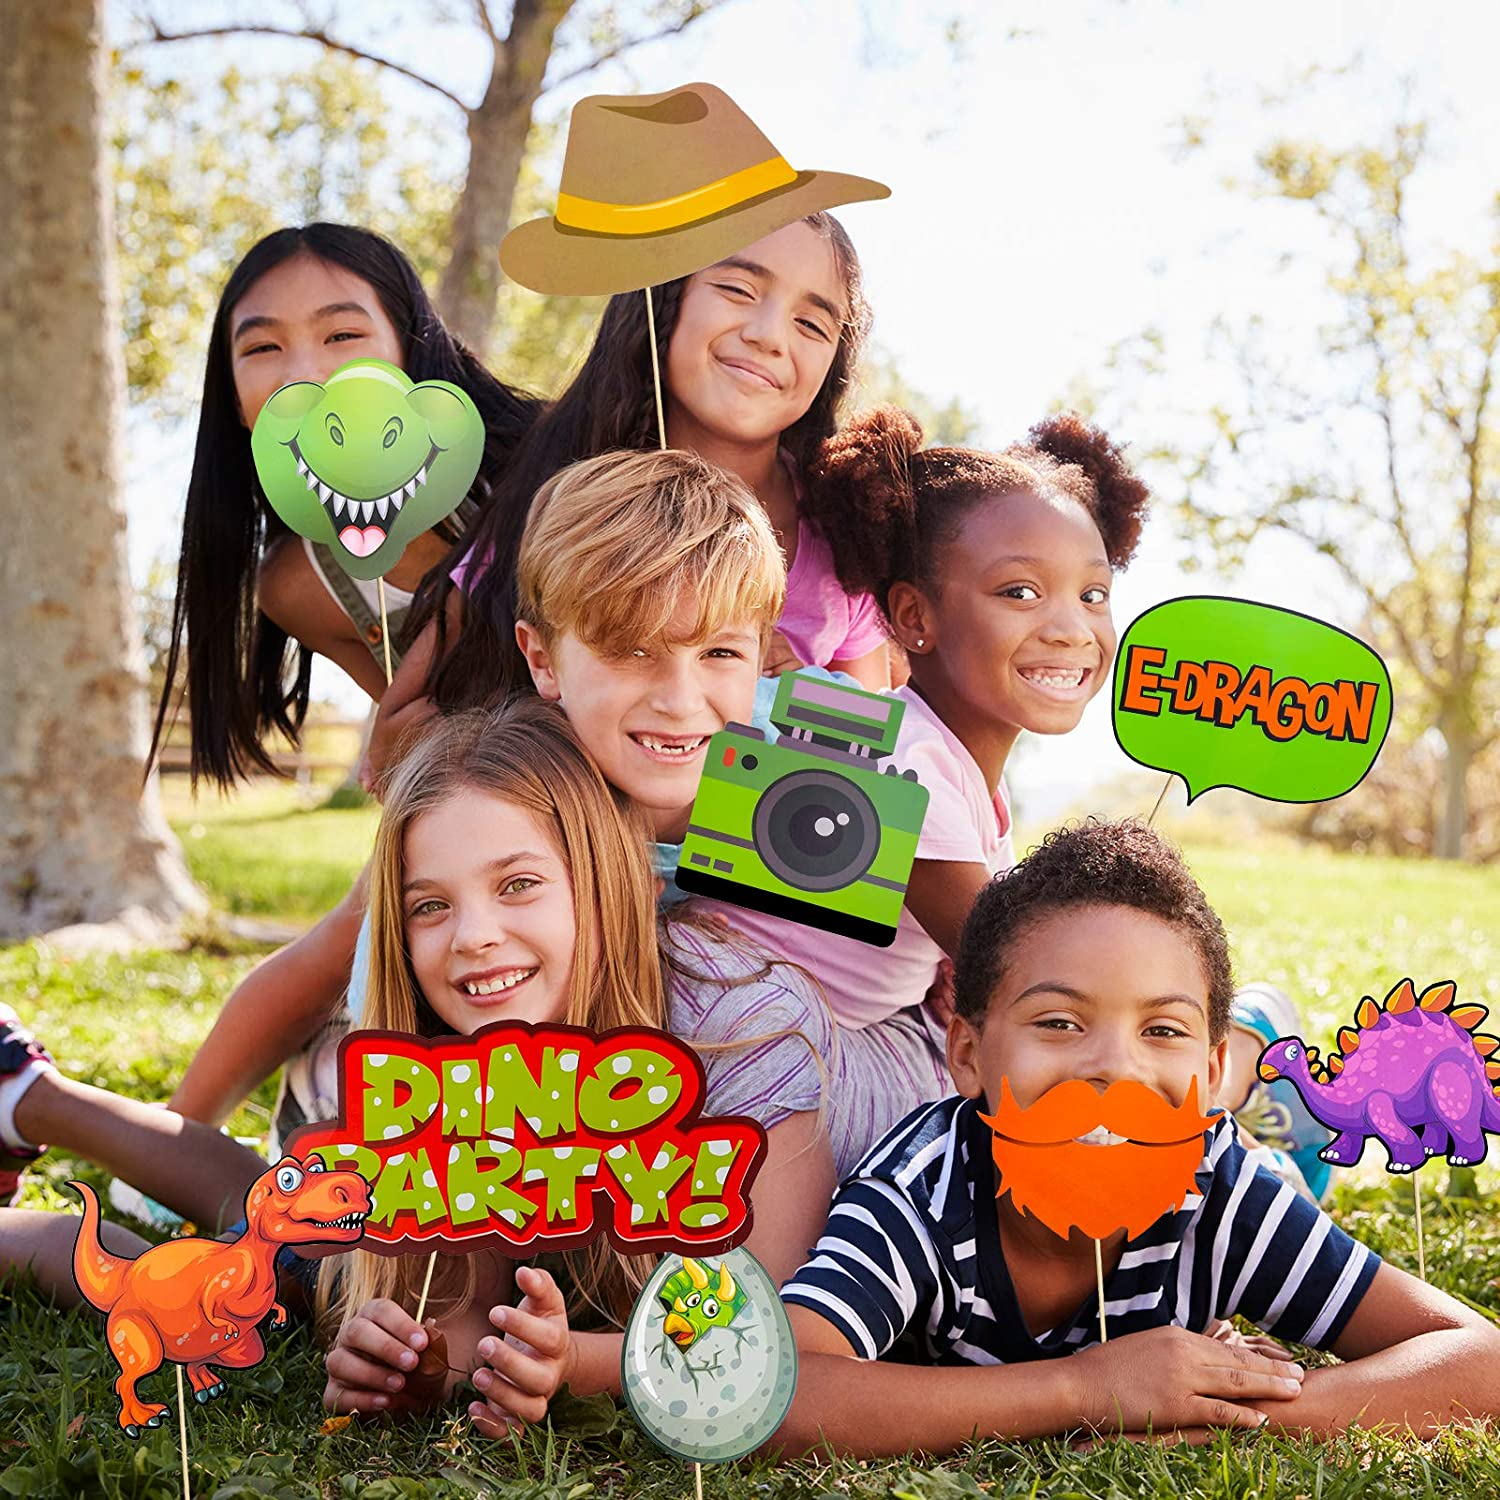 Jurassic World Birthday Party Supplies Qpout Dinosaur Photo Booth Props Kit T-Rex Photography Backdrop Decoration 32 Count Dinosaur Birthday Party Favor Selfie Props for Boys Kids